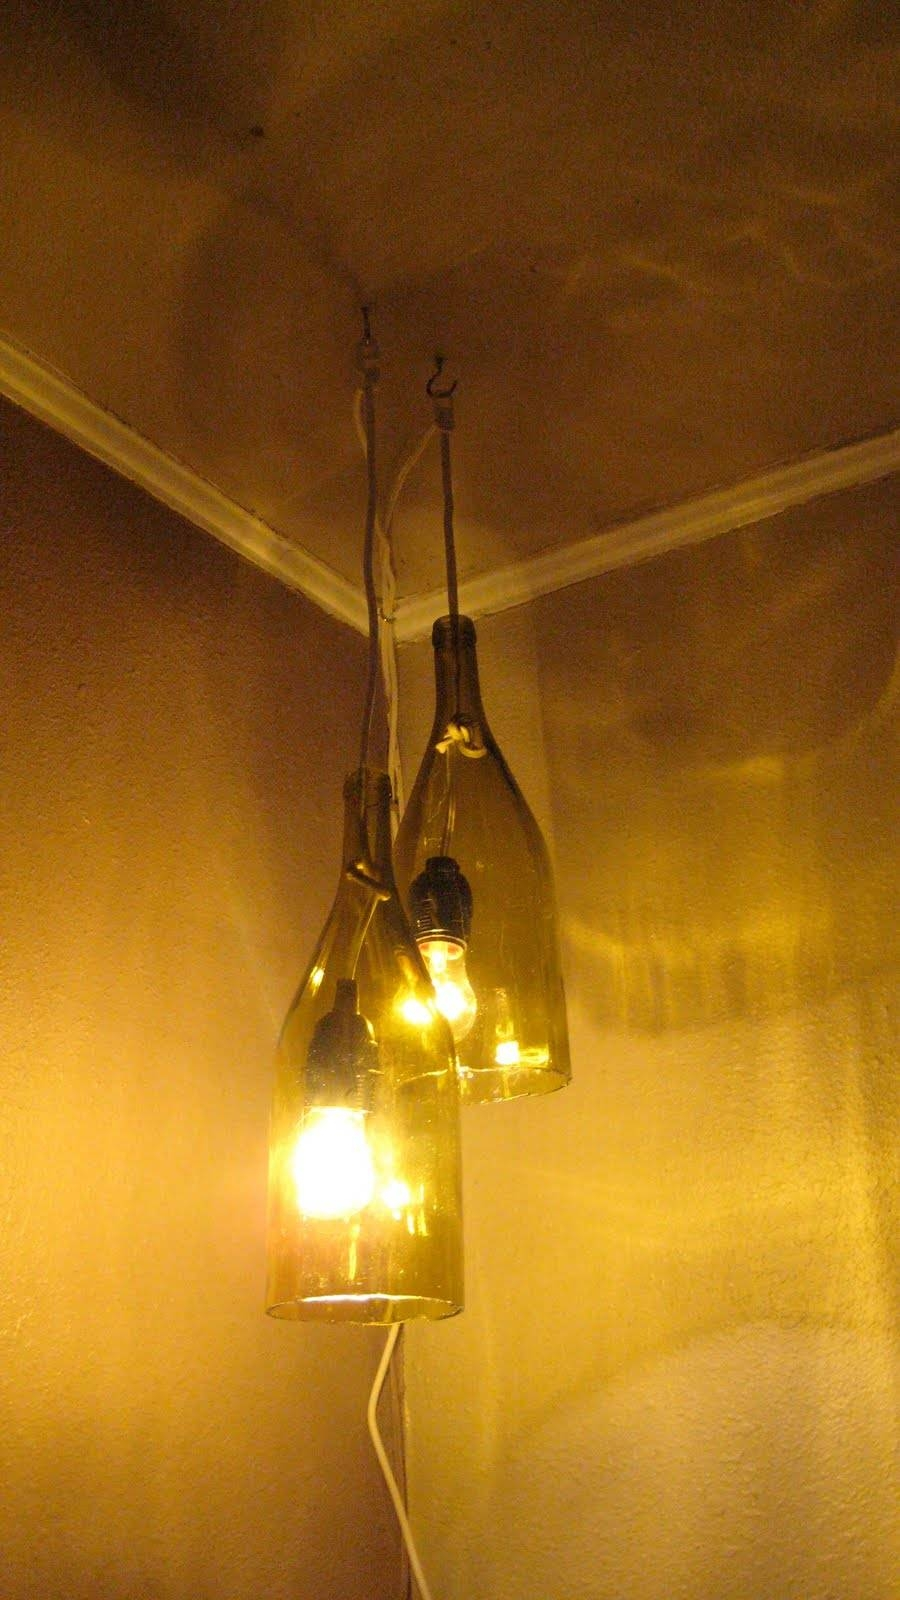 Remodelaholic | How To Make A Glass Wine Bottle Pendant Light Diy within  Liquor Bottle Pendant